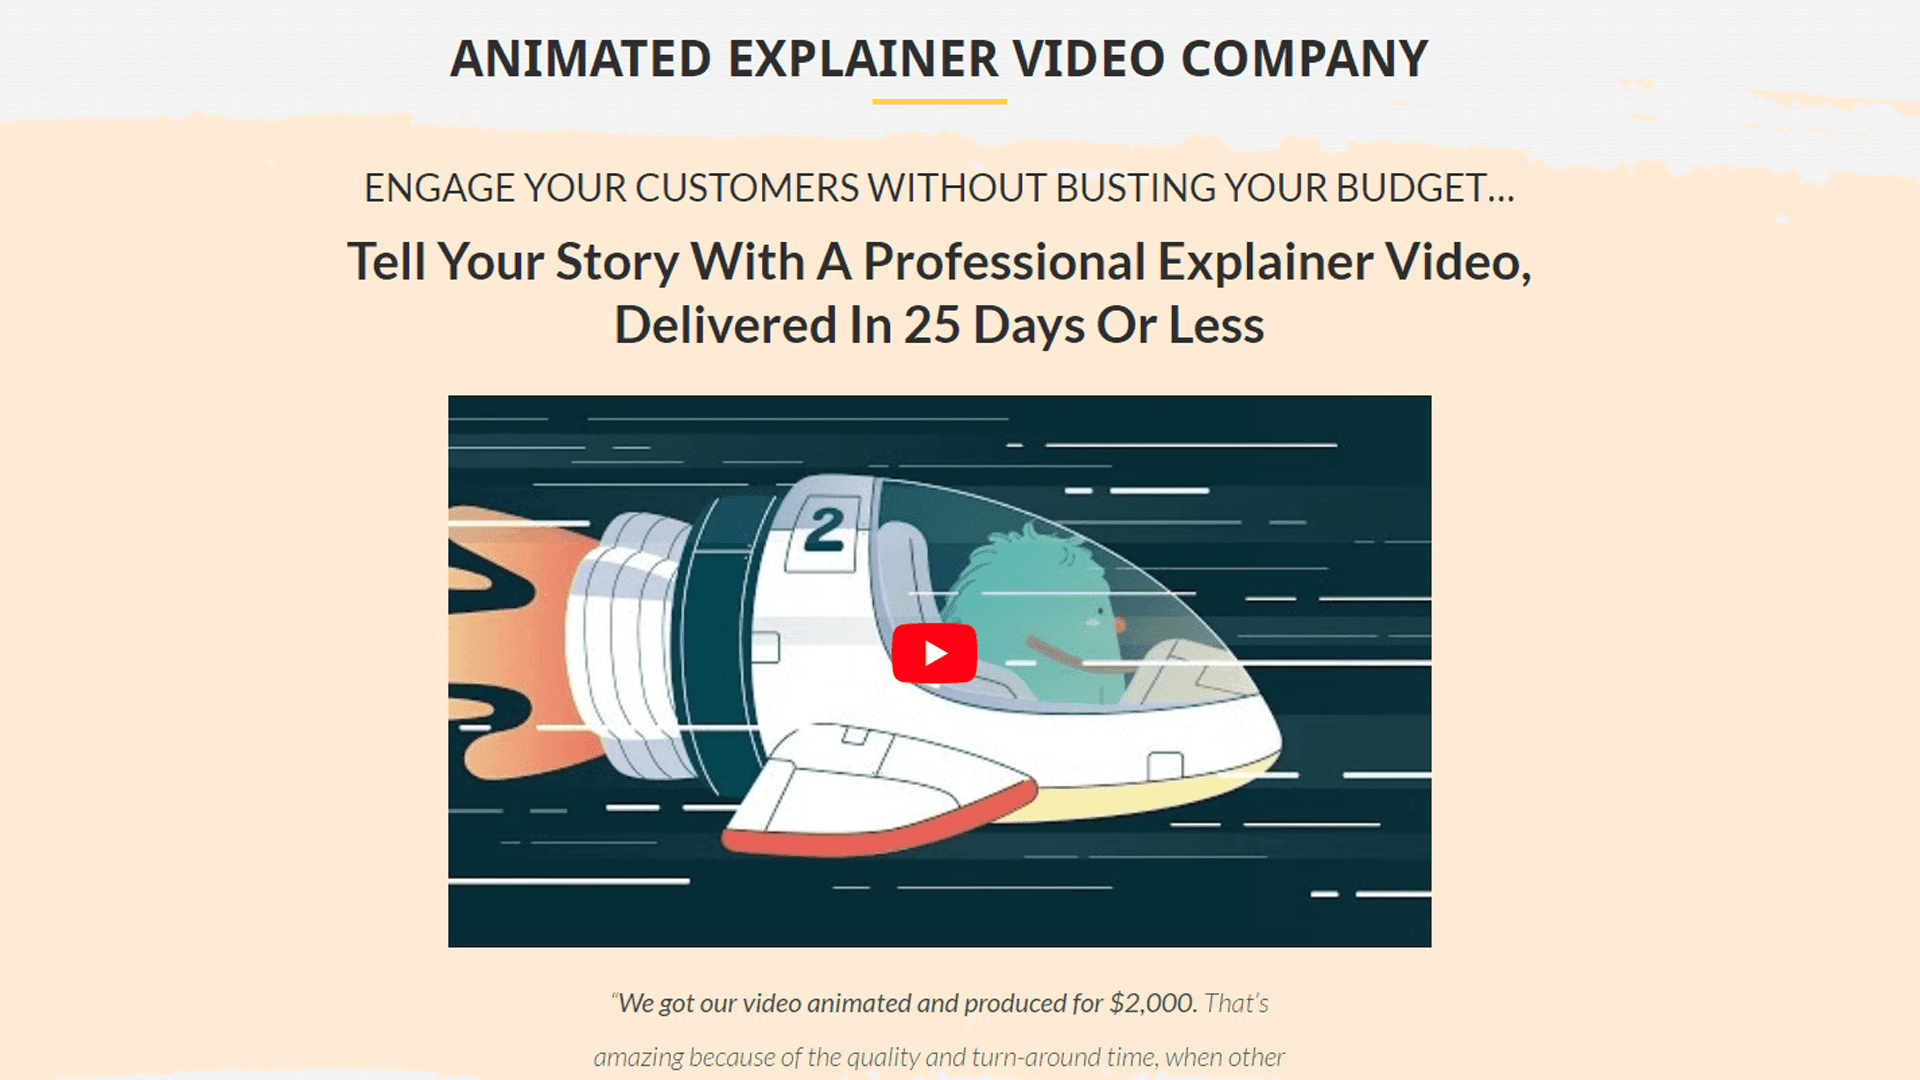 Breadnbeyond - Animated Explainer Video Company